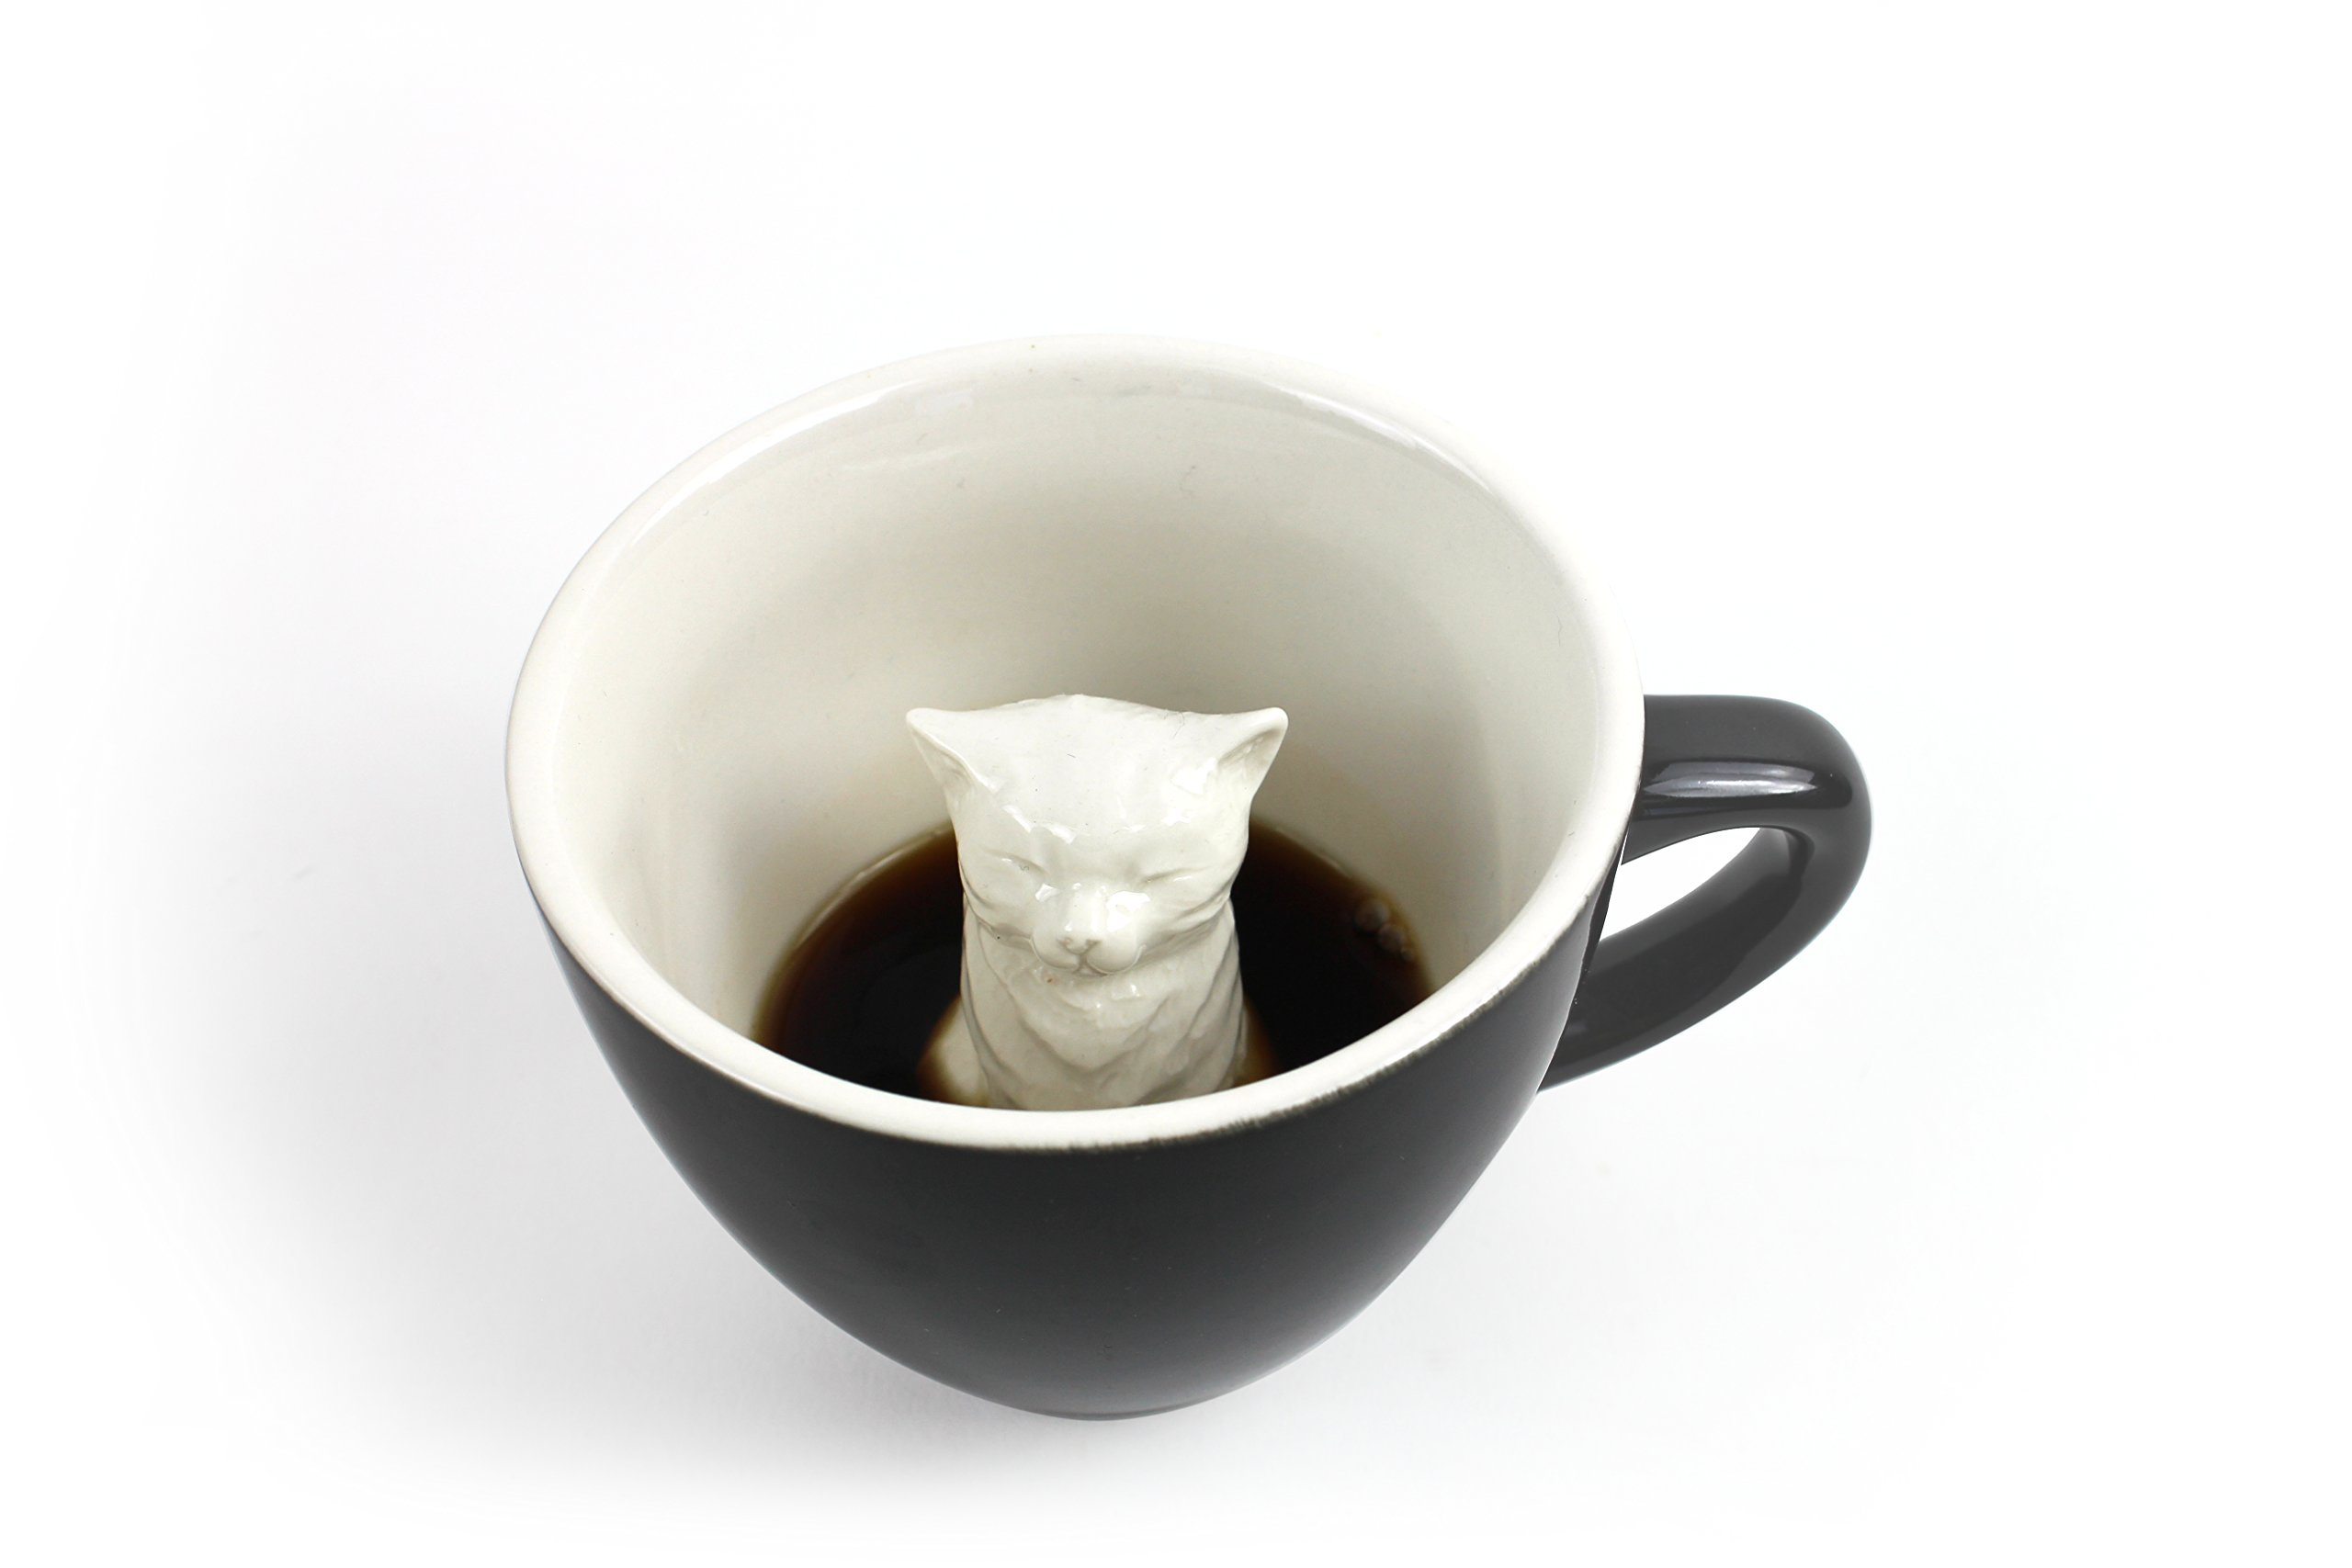 CREATURE CUPS Cat Ceramic Cup (11 Ounce, Black) | Hidden Creepy Animal Inside | Halloween, Holiday and Birthday Gift for Coffee & Tea Lovers